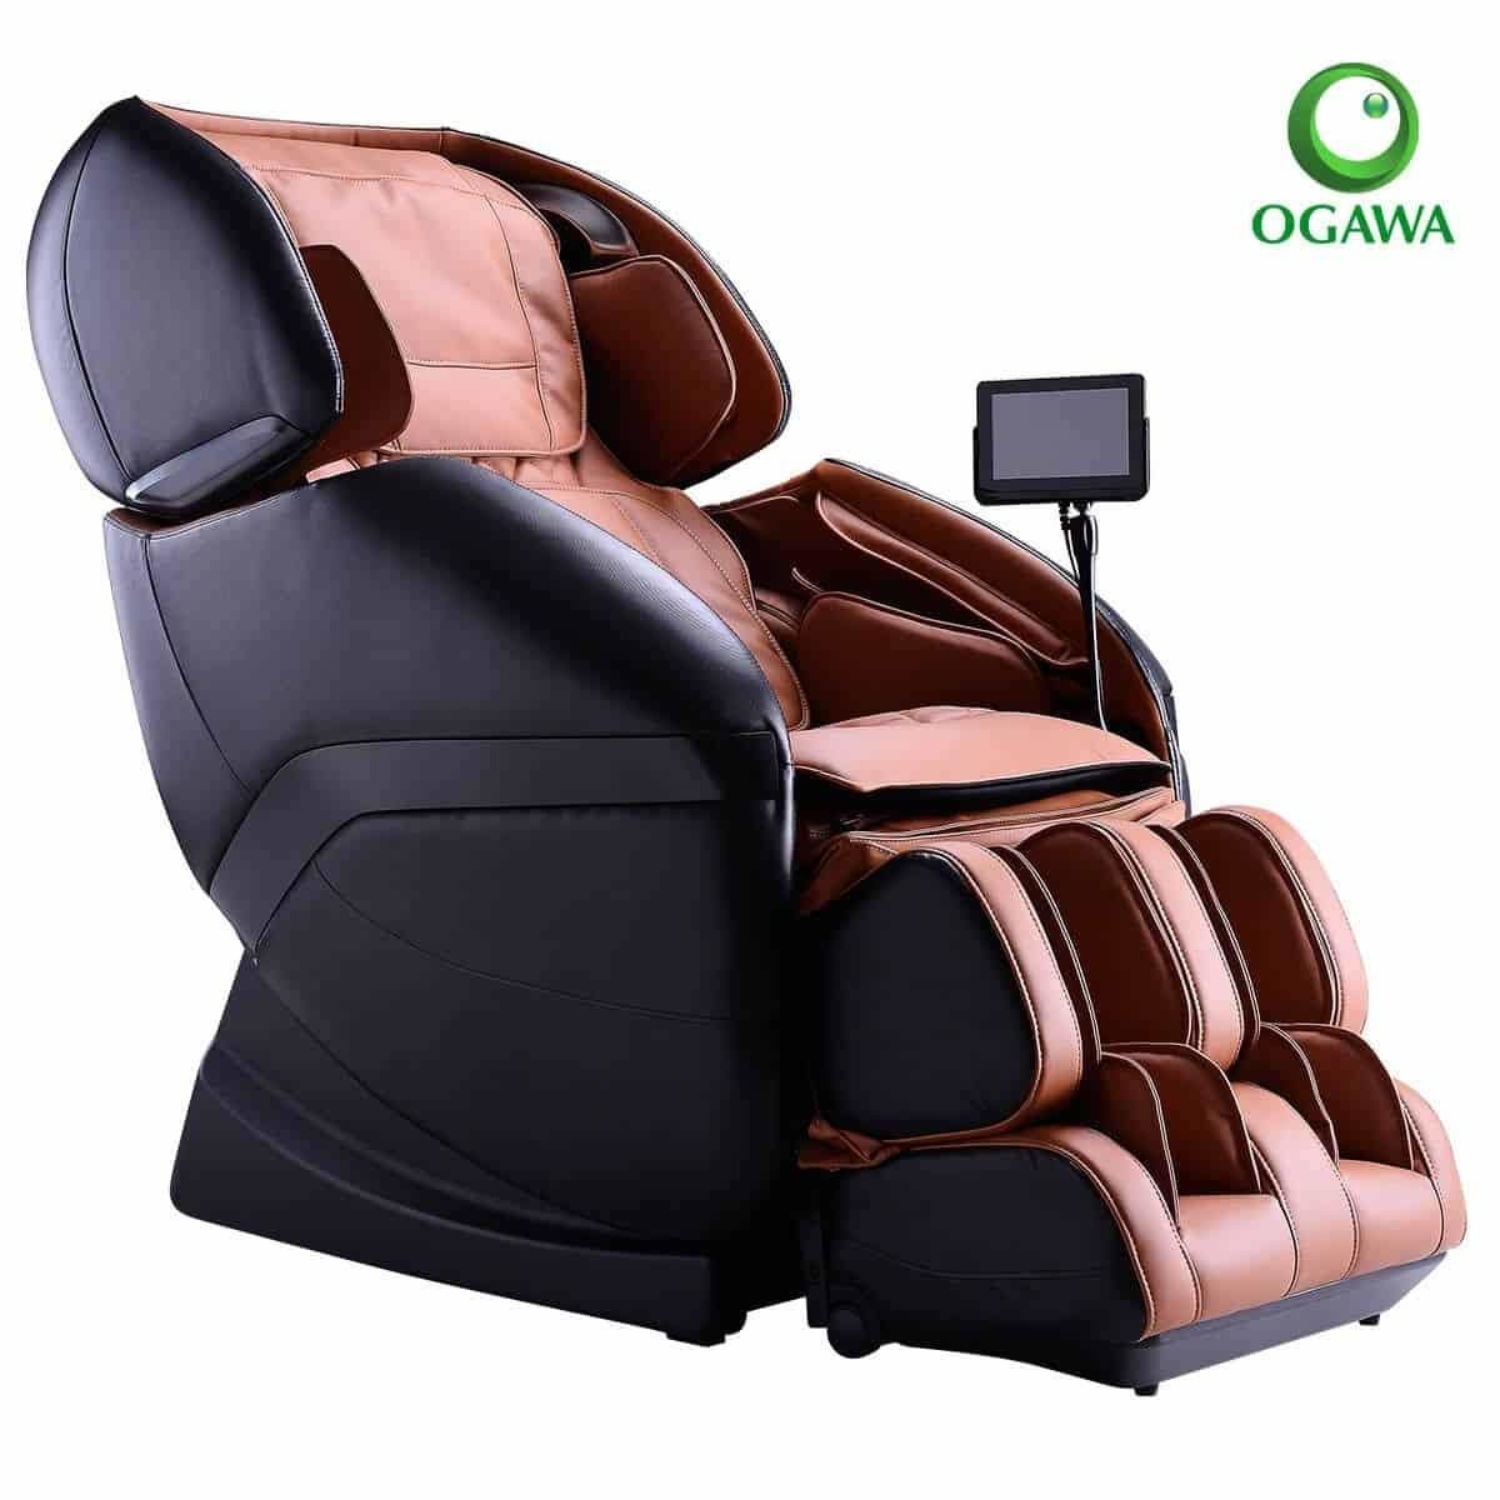 Ogawa Active L Massage Chair Comparison